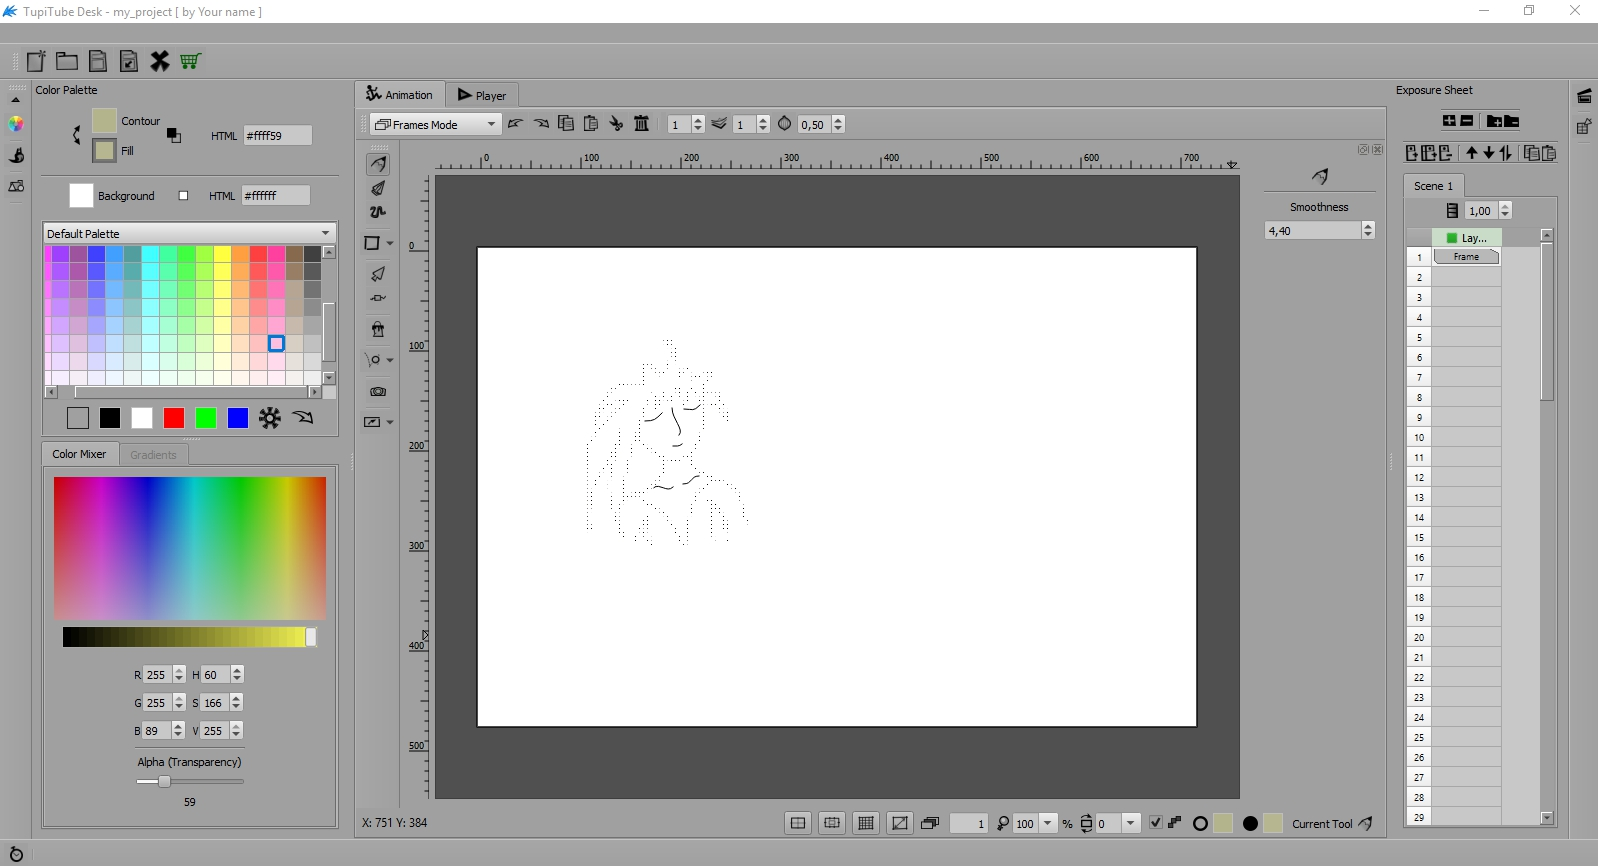 Features of the open source 2D animation software TupiTube